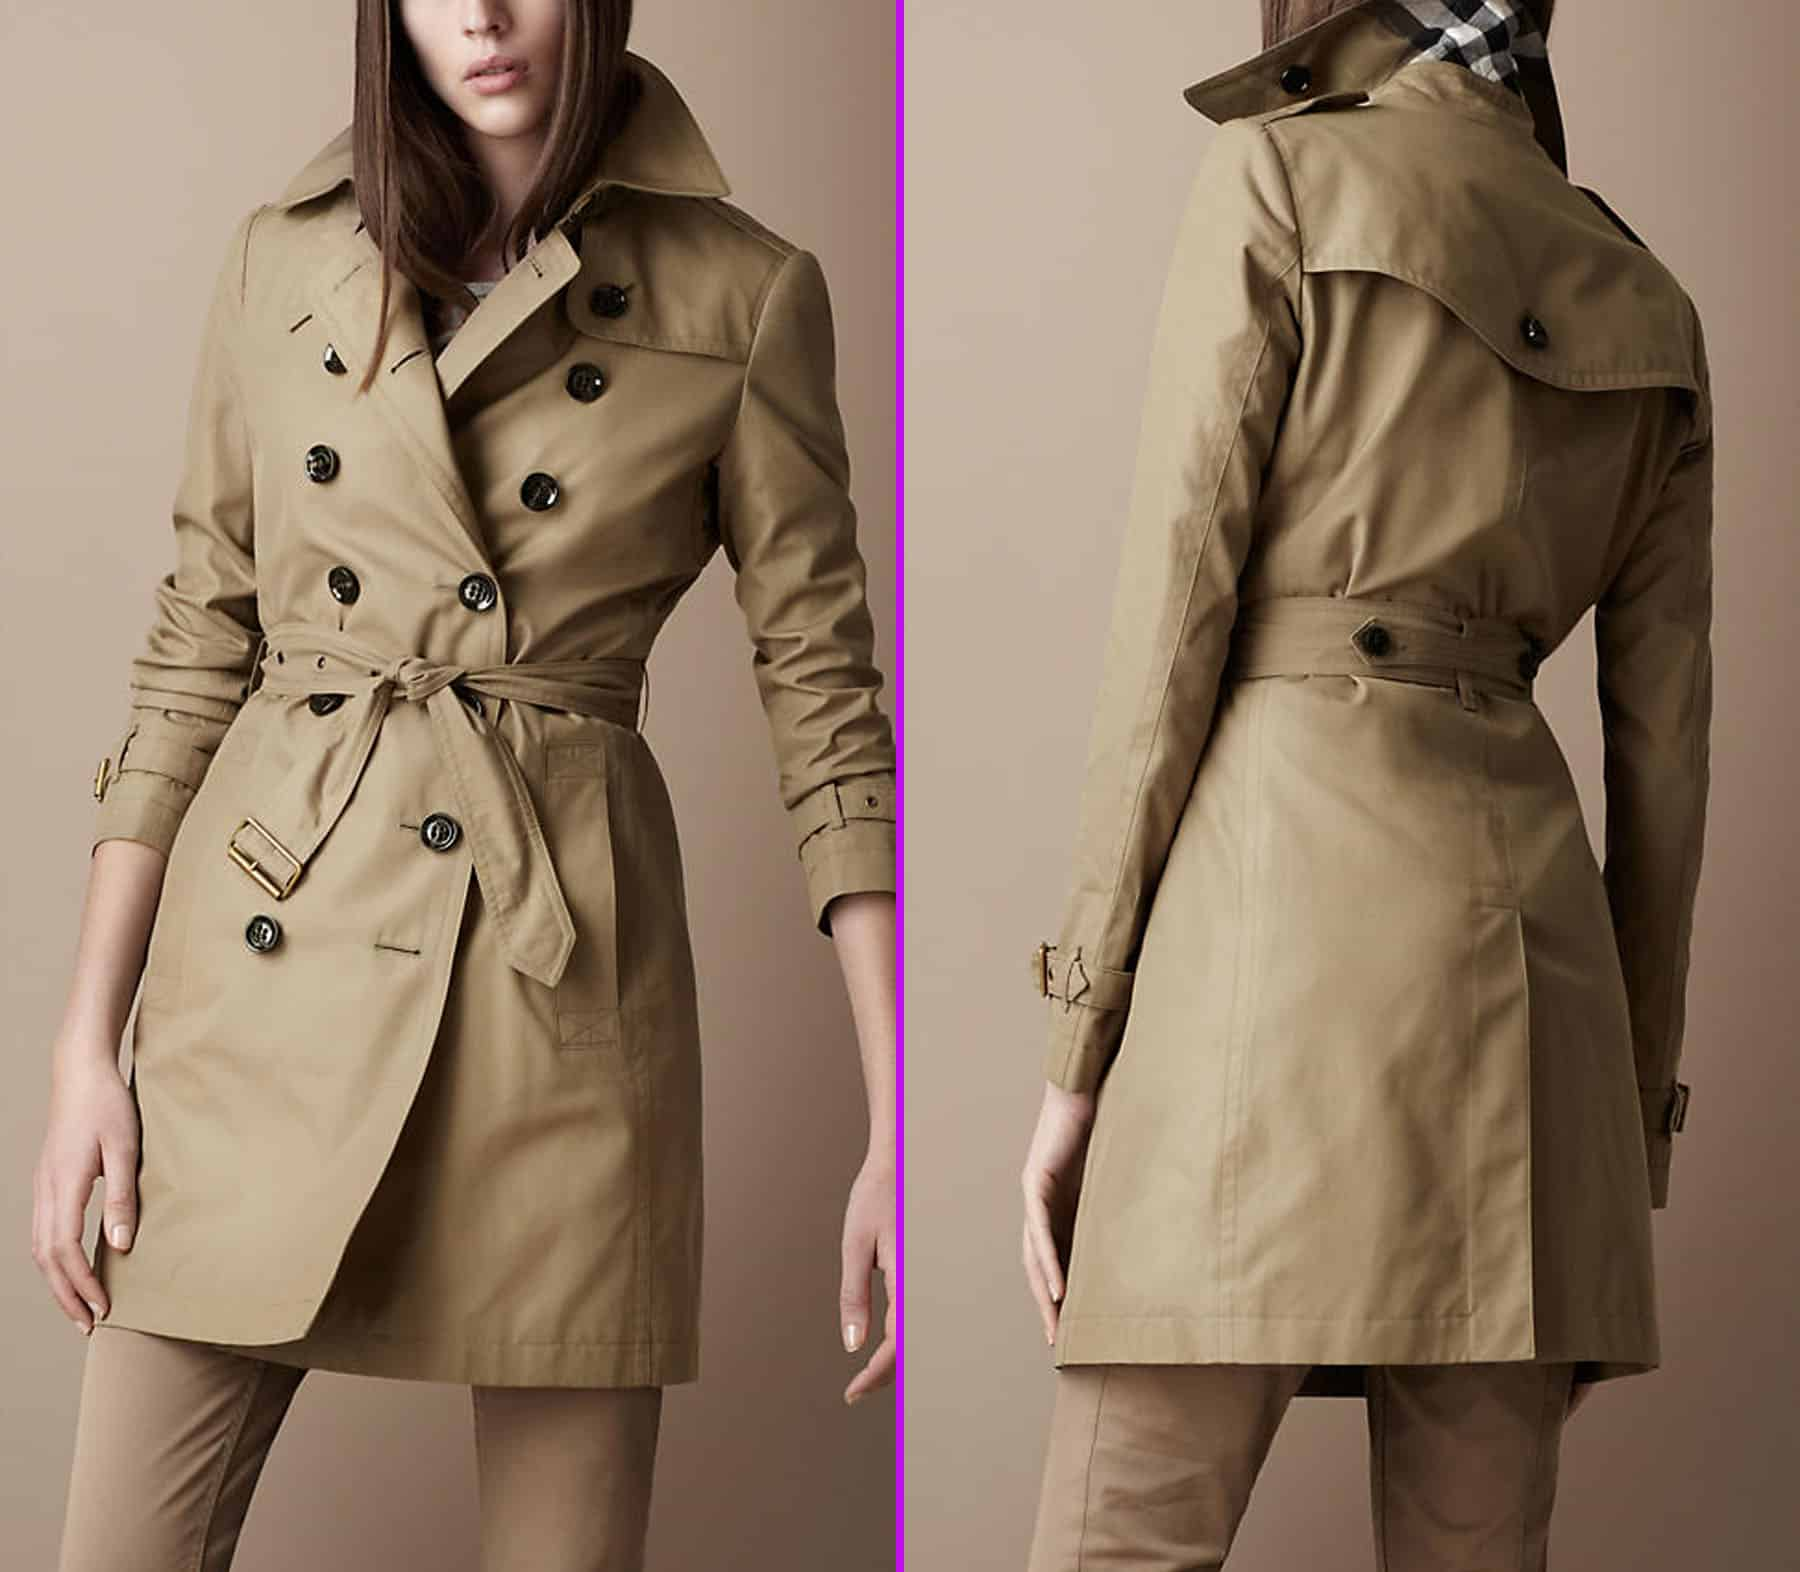 Ladies coats fashion trends Fall winter 2015-2016